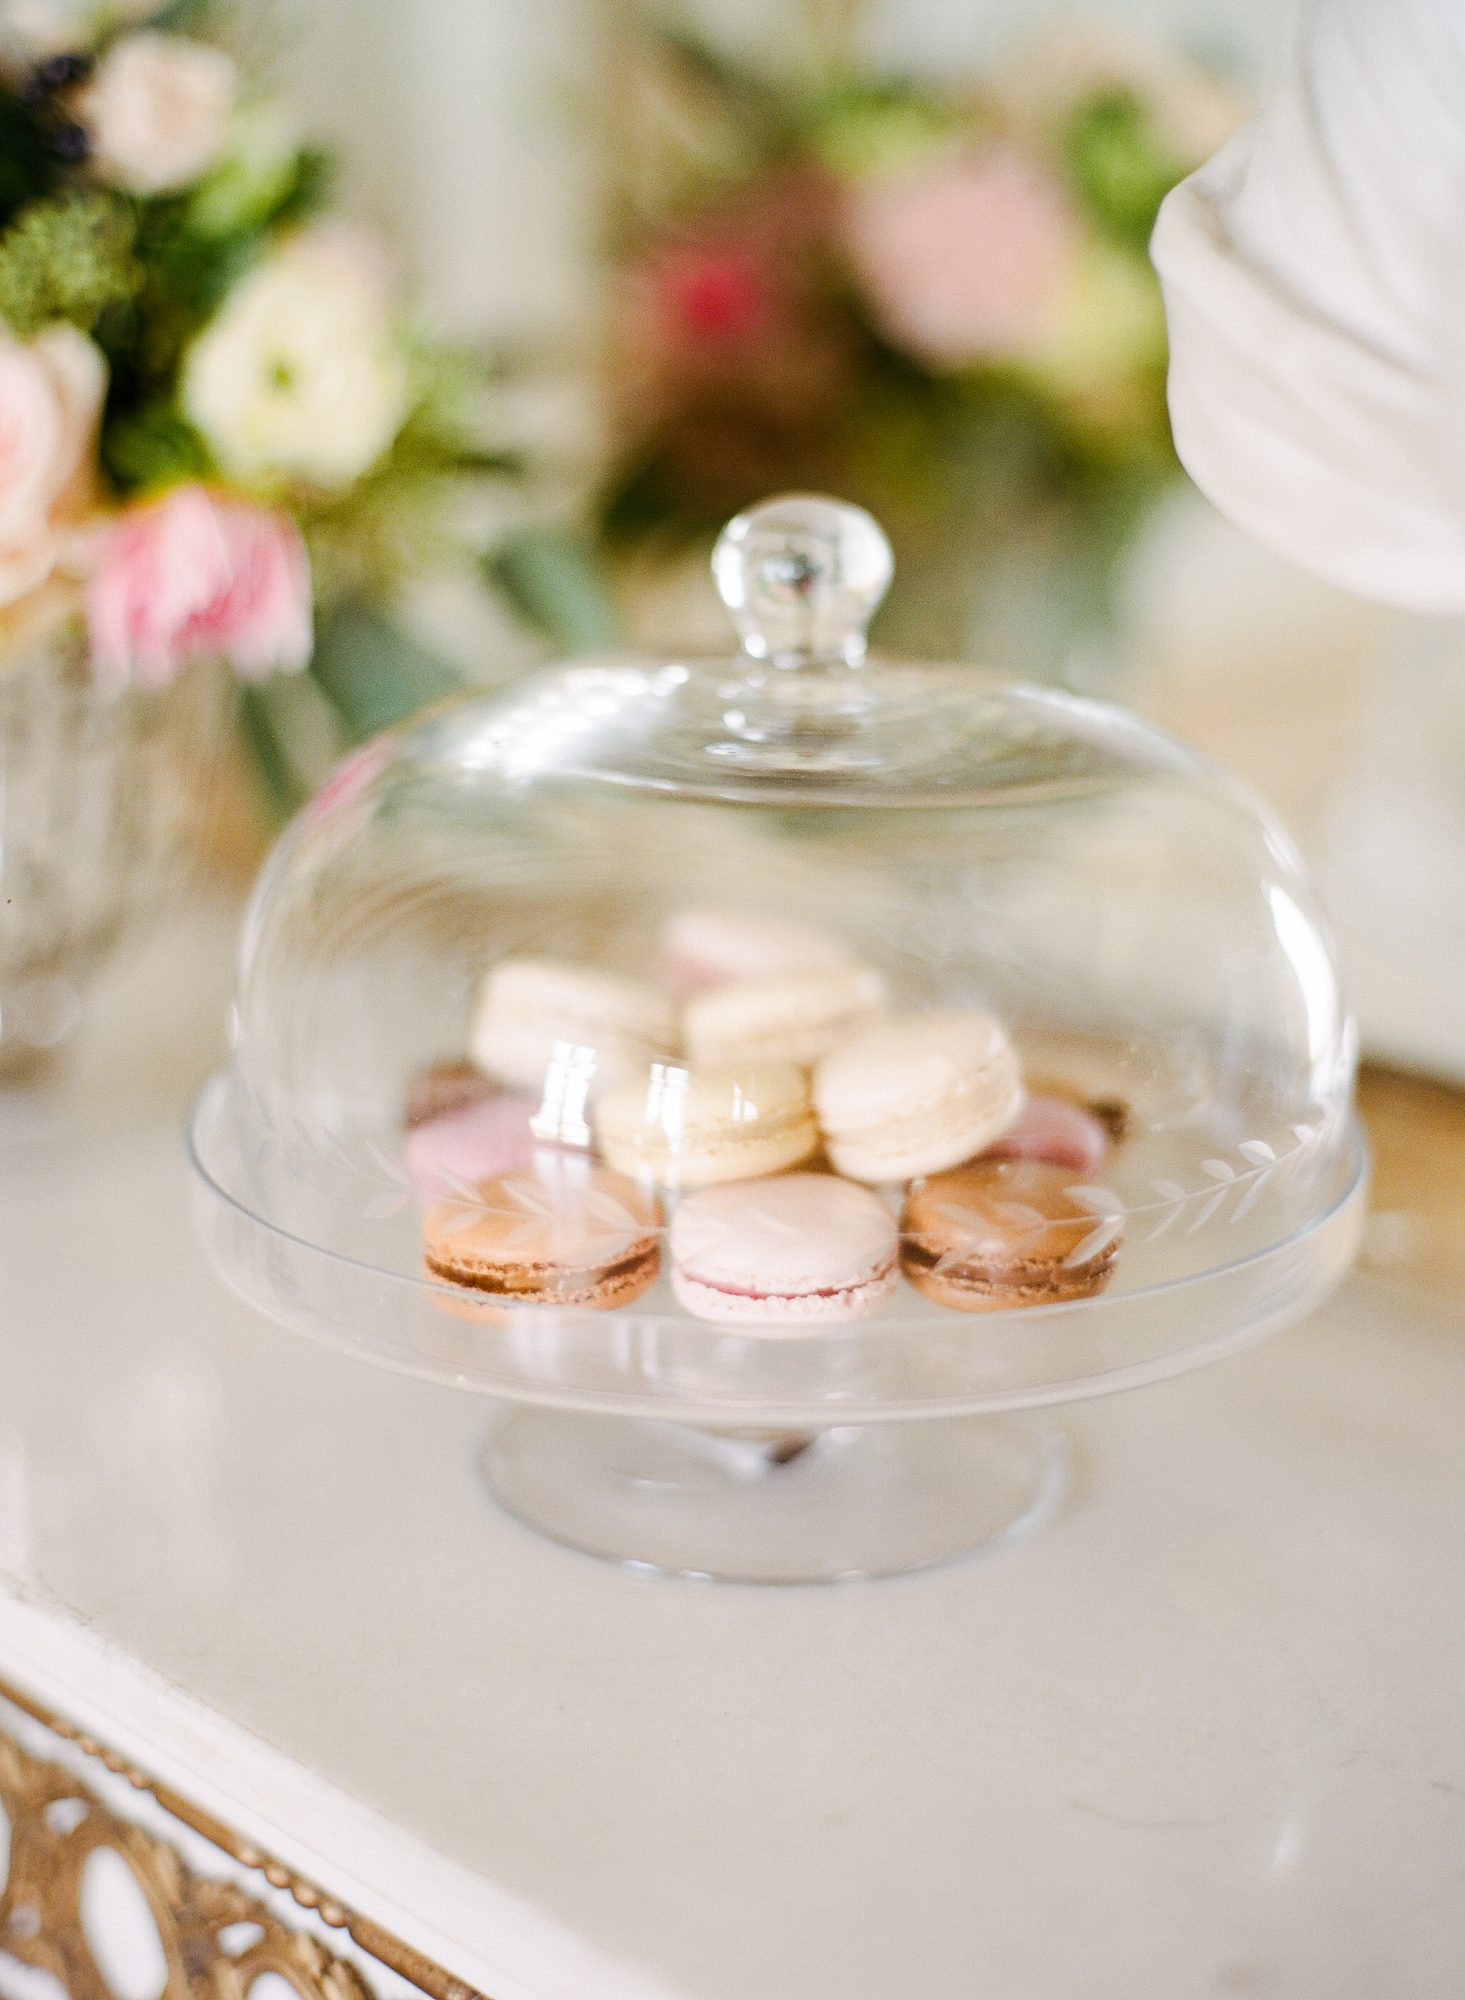 assorted macarons under a cloche